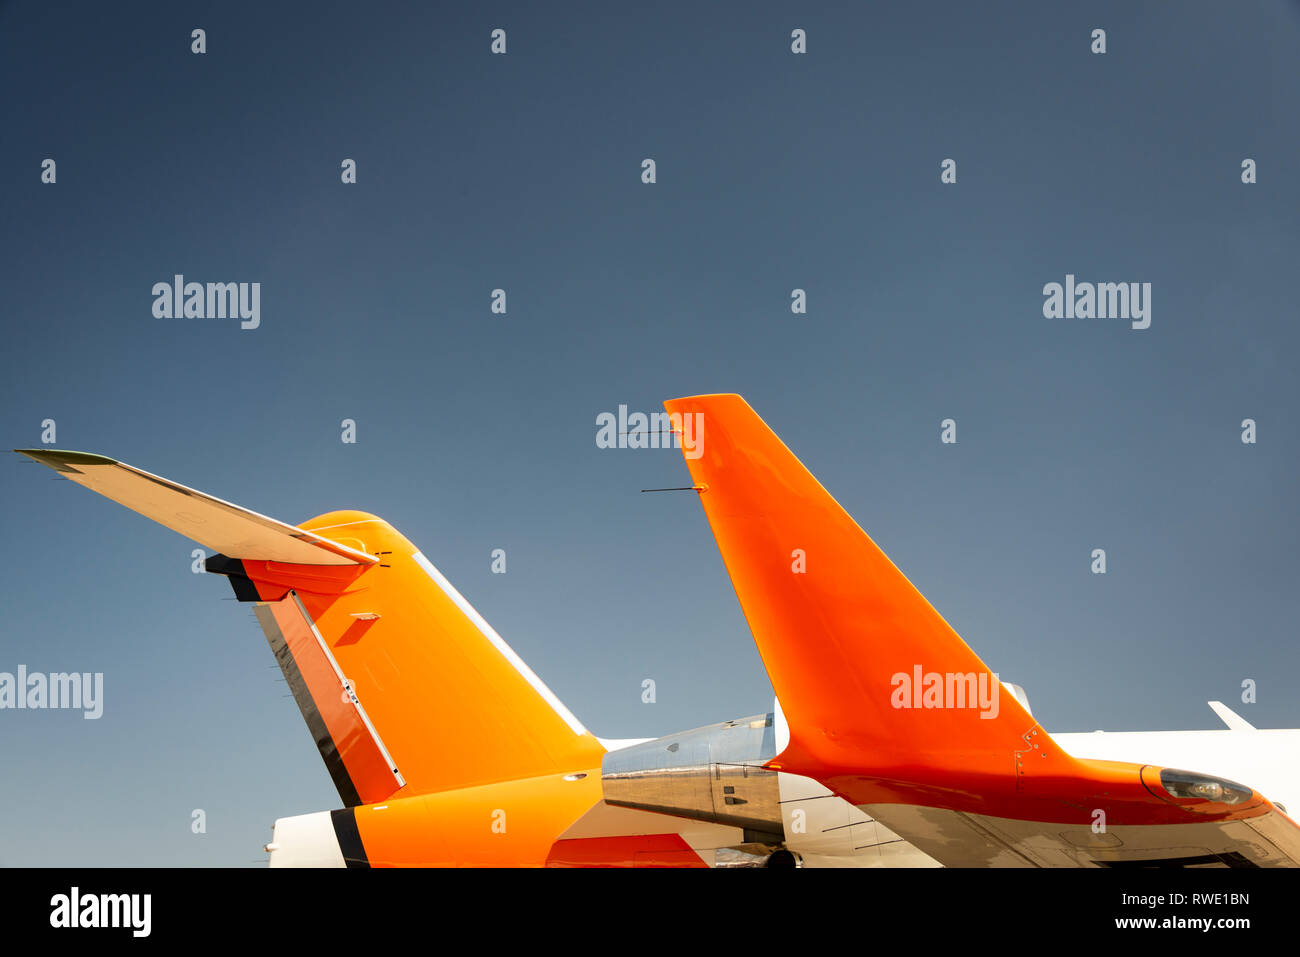 Winglet and tail of a jet aircraft, painted orange and white - Stock Image